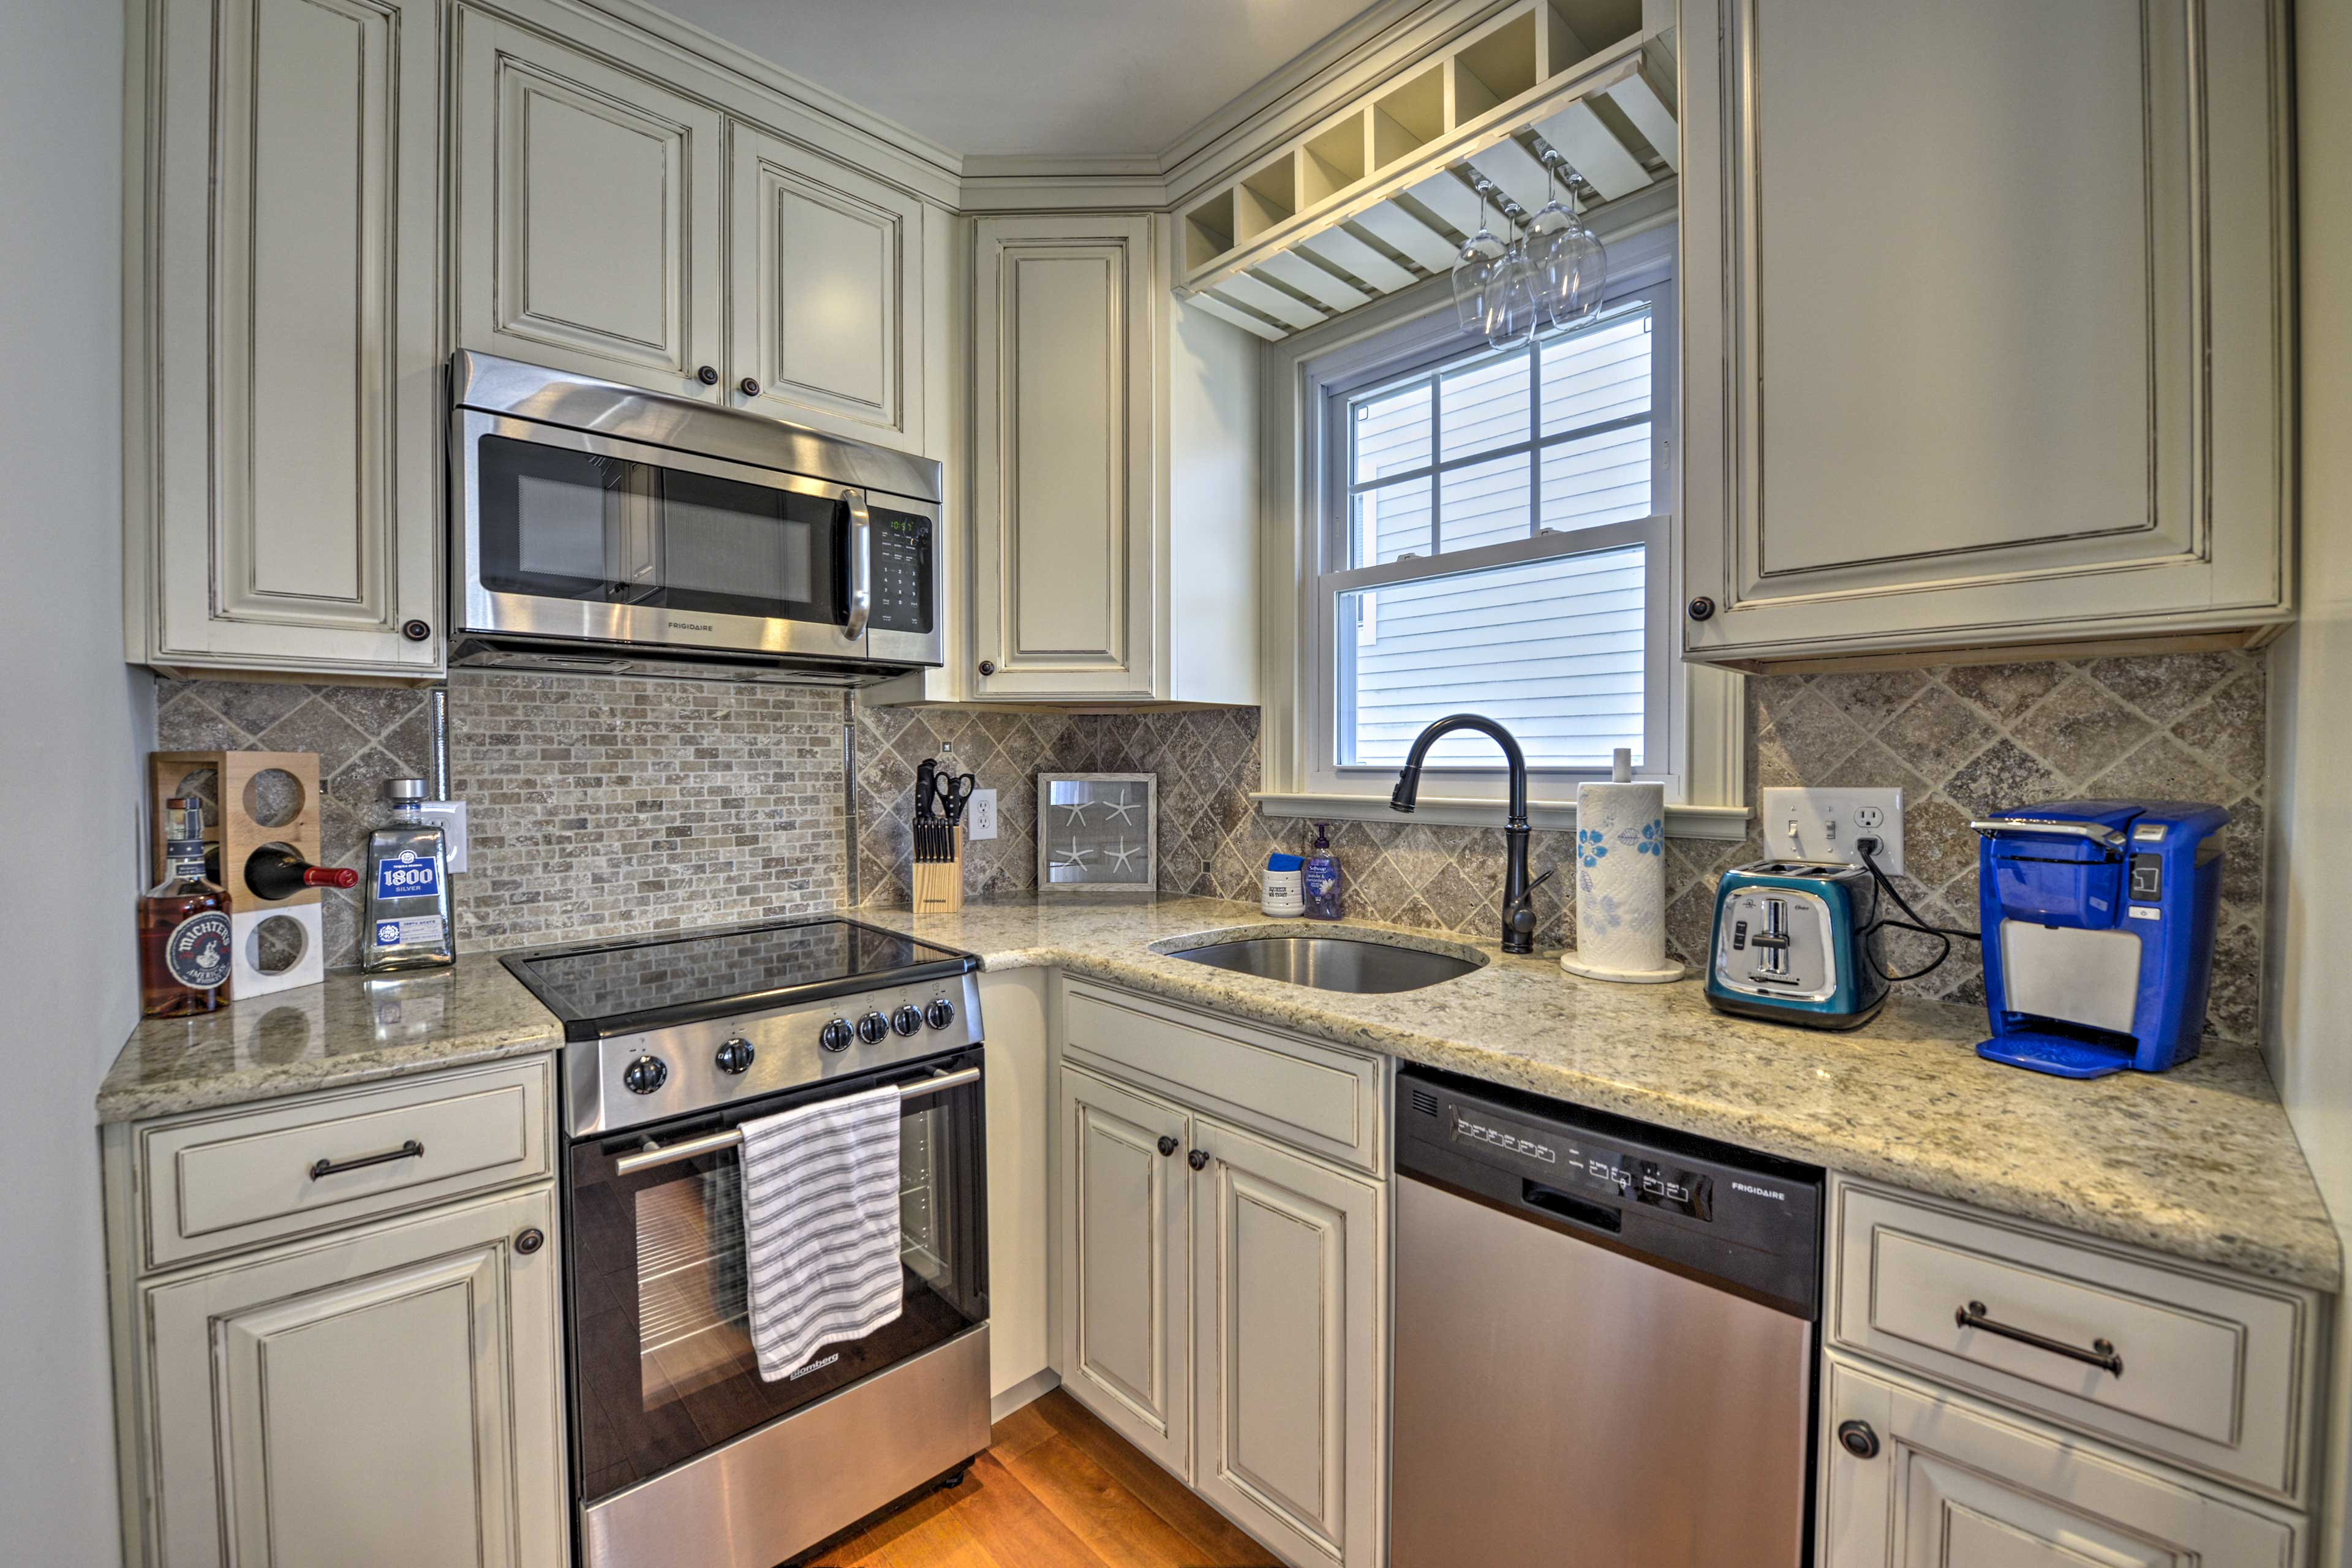 Whip up delicious meals with the stainless steel appliances.